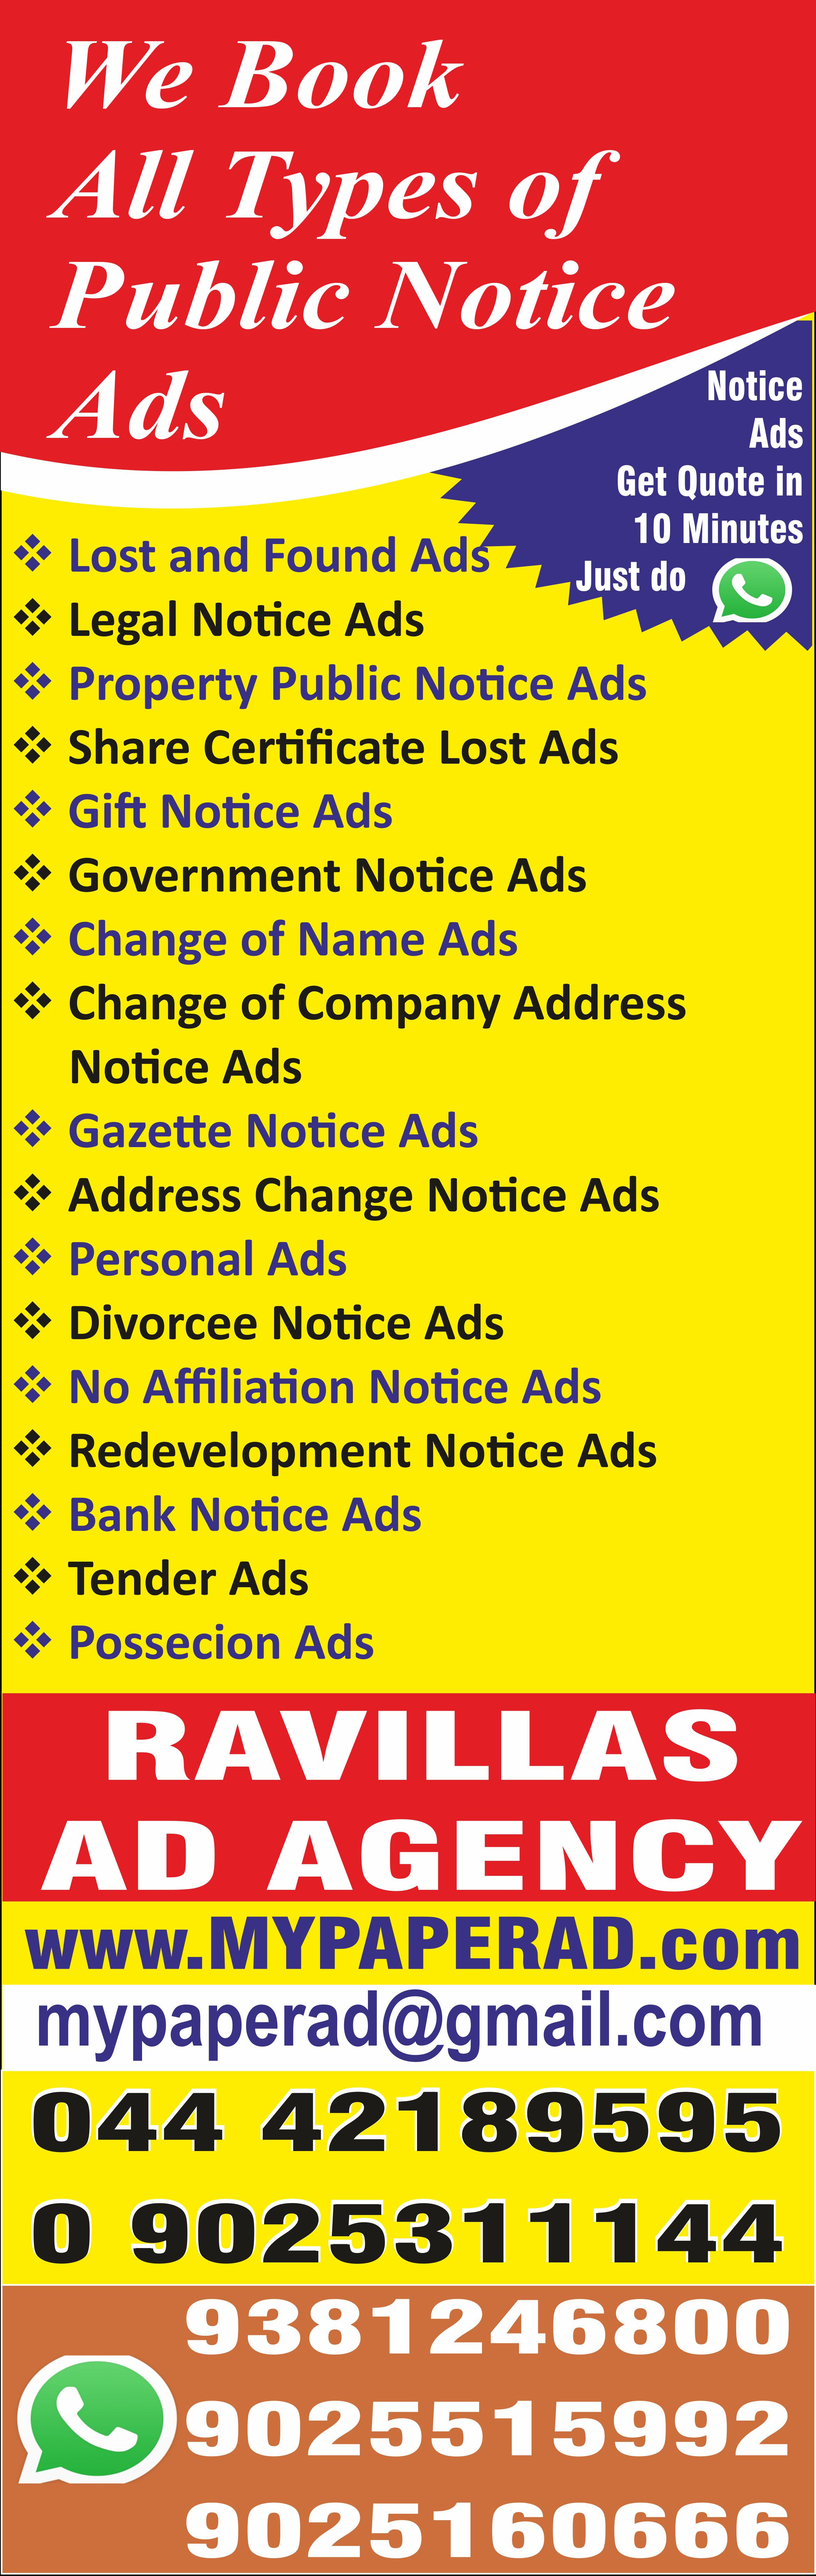 A technology that makes money and  saves money at the same time.  Finally, doing business makes  sense  NEWS PAPER ADVERTISEMENTS @ YOUR DOORSTEP CALL/ MAIL / WHATS APP 9381246800  R. Prakash Naidu 9381246800, 9025311144  R. Kanaka           044 42189595, 9025515992  Business Name : RAVILLAS AD AGENCY   Ad Booking / Visit :  http://mypaperad.com/  Business Address : No.815/4, 1ST Floor,                                    M.T.H.Road, Padi, Chennai-600 050                                   (OPP. BRITANIA 2ND GATE)  MAIL : ravillasads@gmail.com              ravillasads@yahoo.co.in  Visit Our Group Site : http://www.ravillas.com/